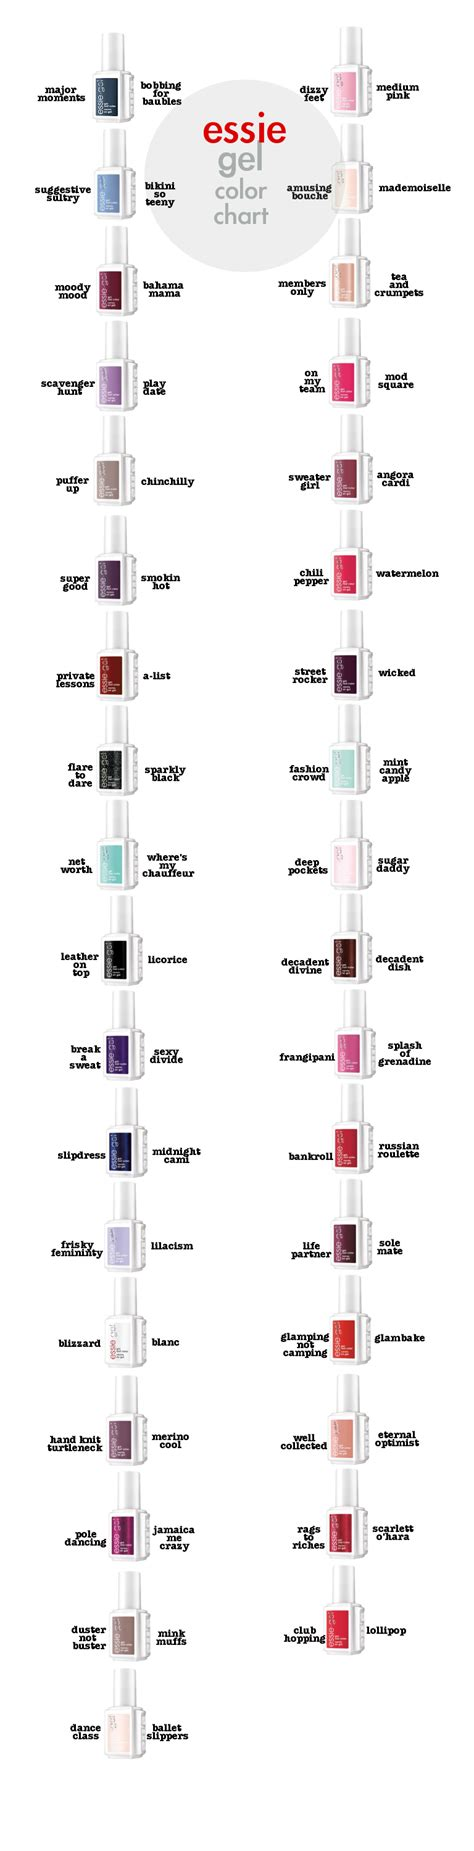 match gel colors essie gel colors and their match with the original